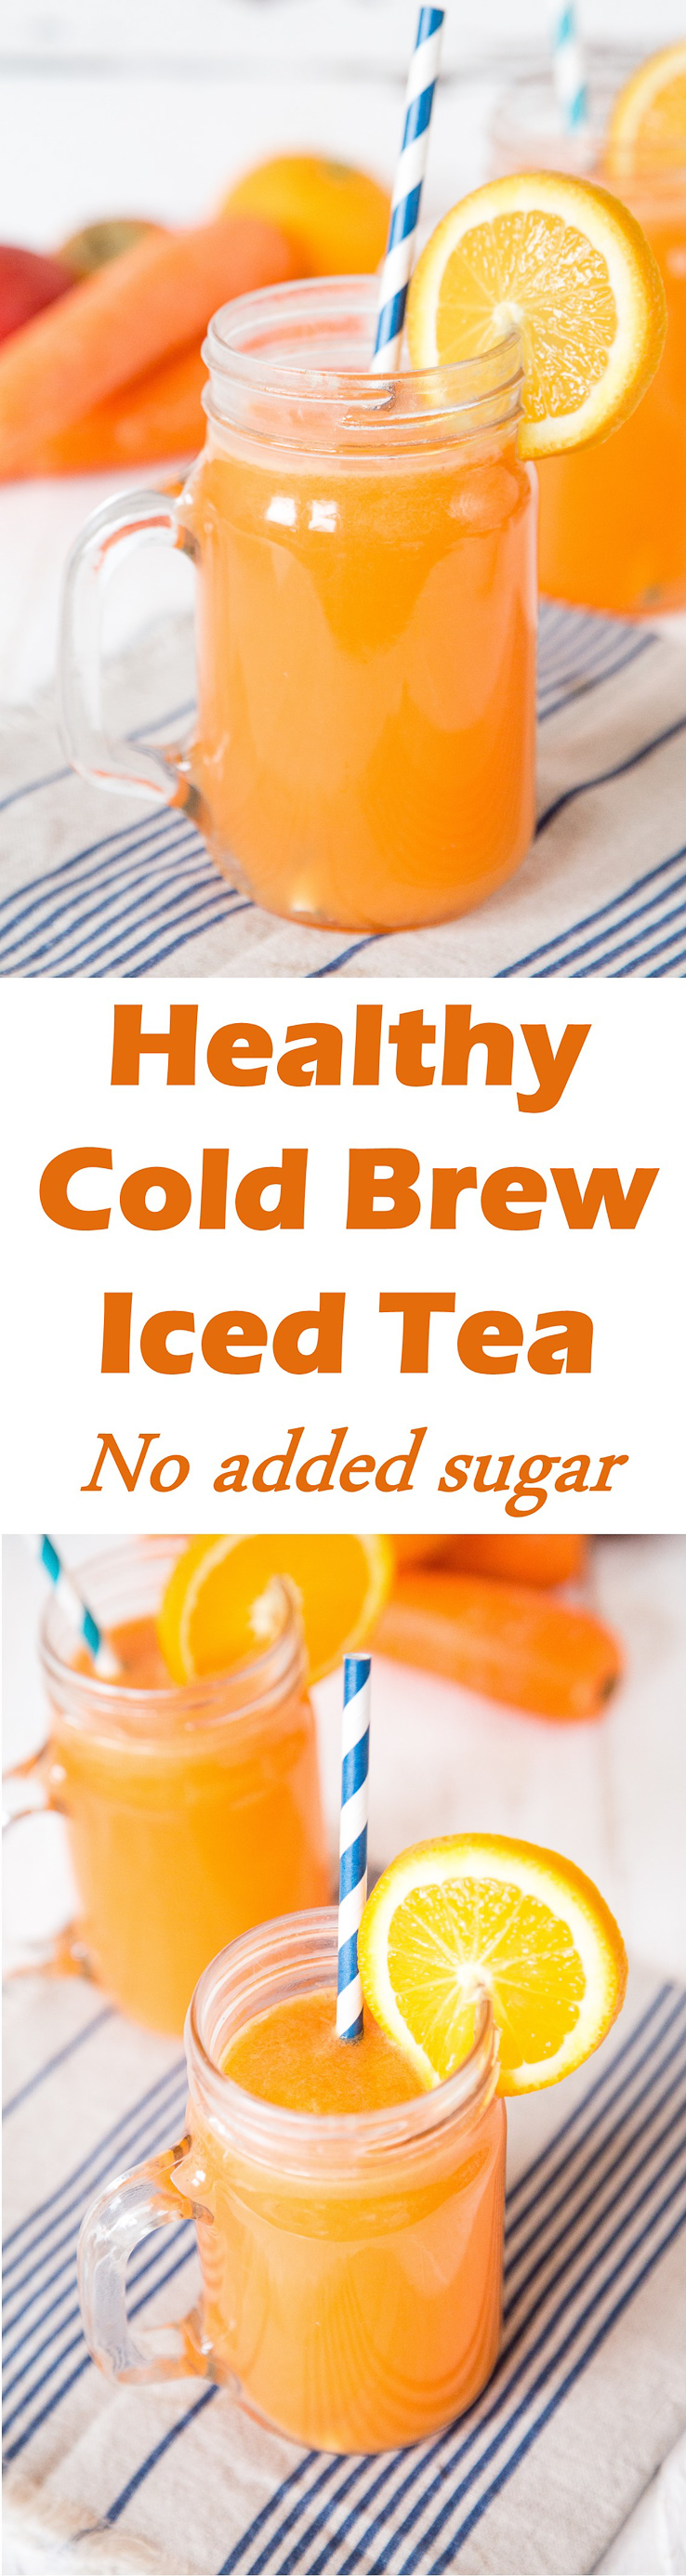 This healthy iced green tea contains no added sugar and counts as one portion of fruit and vegetables. Delicious and refreshing